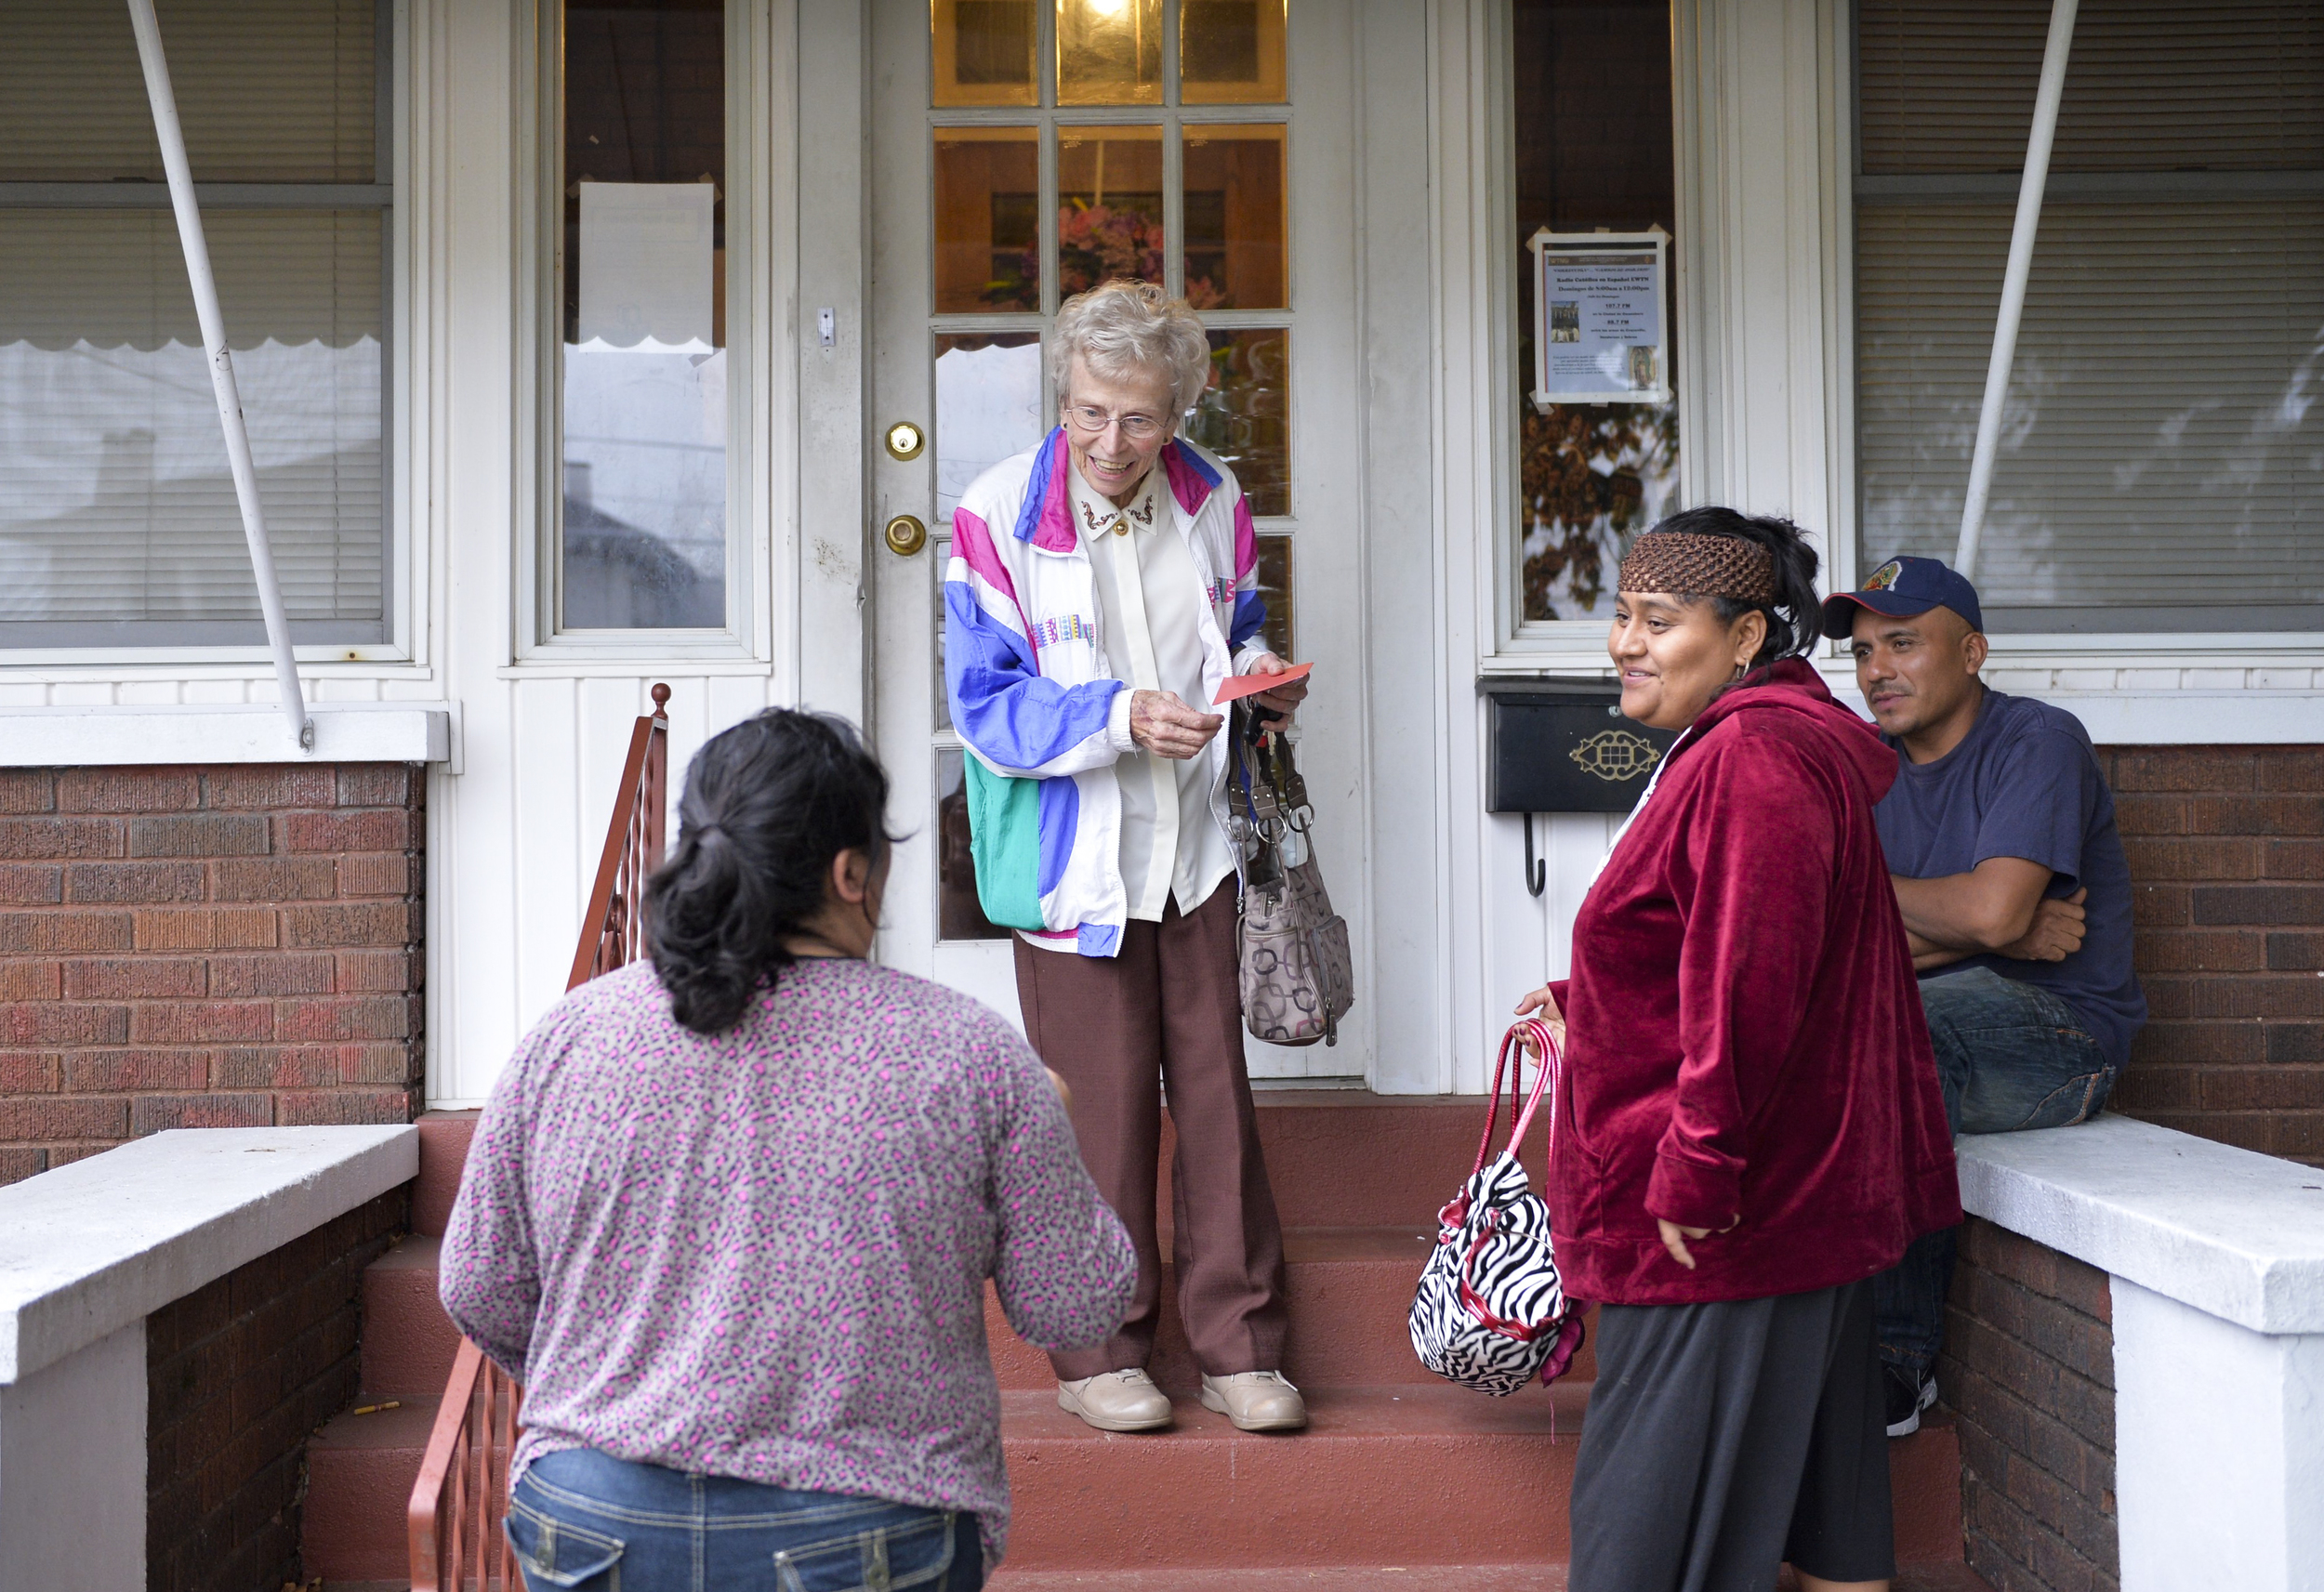 Sister Fran Wilhelm takes a moment before evening Mass to chat with Maria Reyes (left) and Eutimia and Leoule Carrillo (right) on her front porch at the Centro Latino in Owensboro. Maria, who speaks limited English, had come for help filling out paperwork to apply for food stamps.